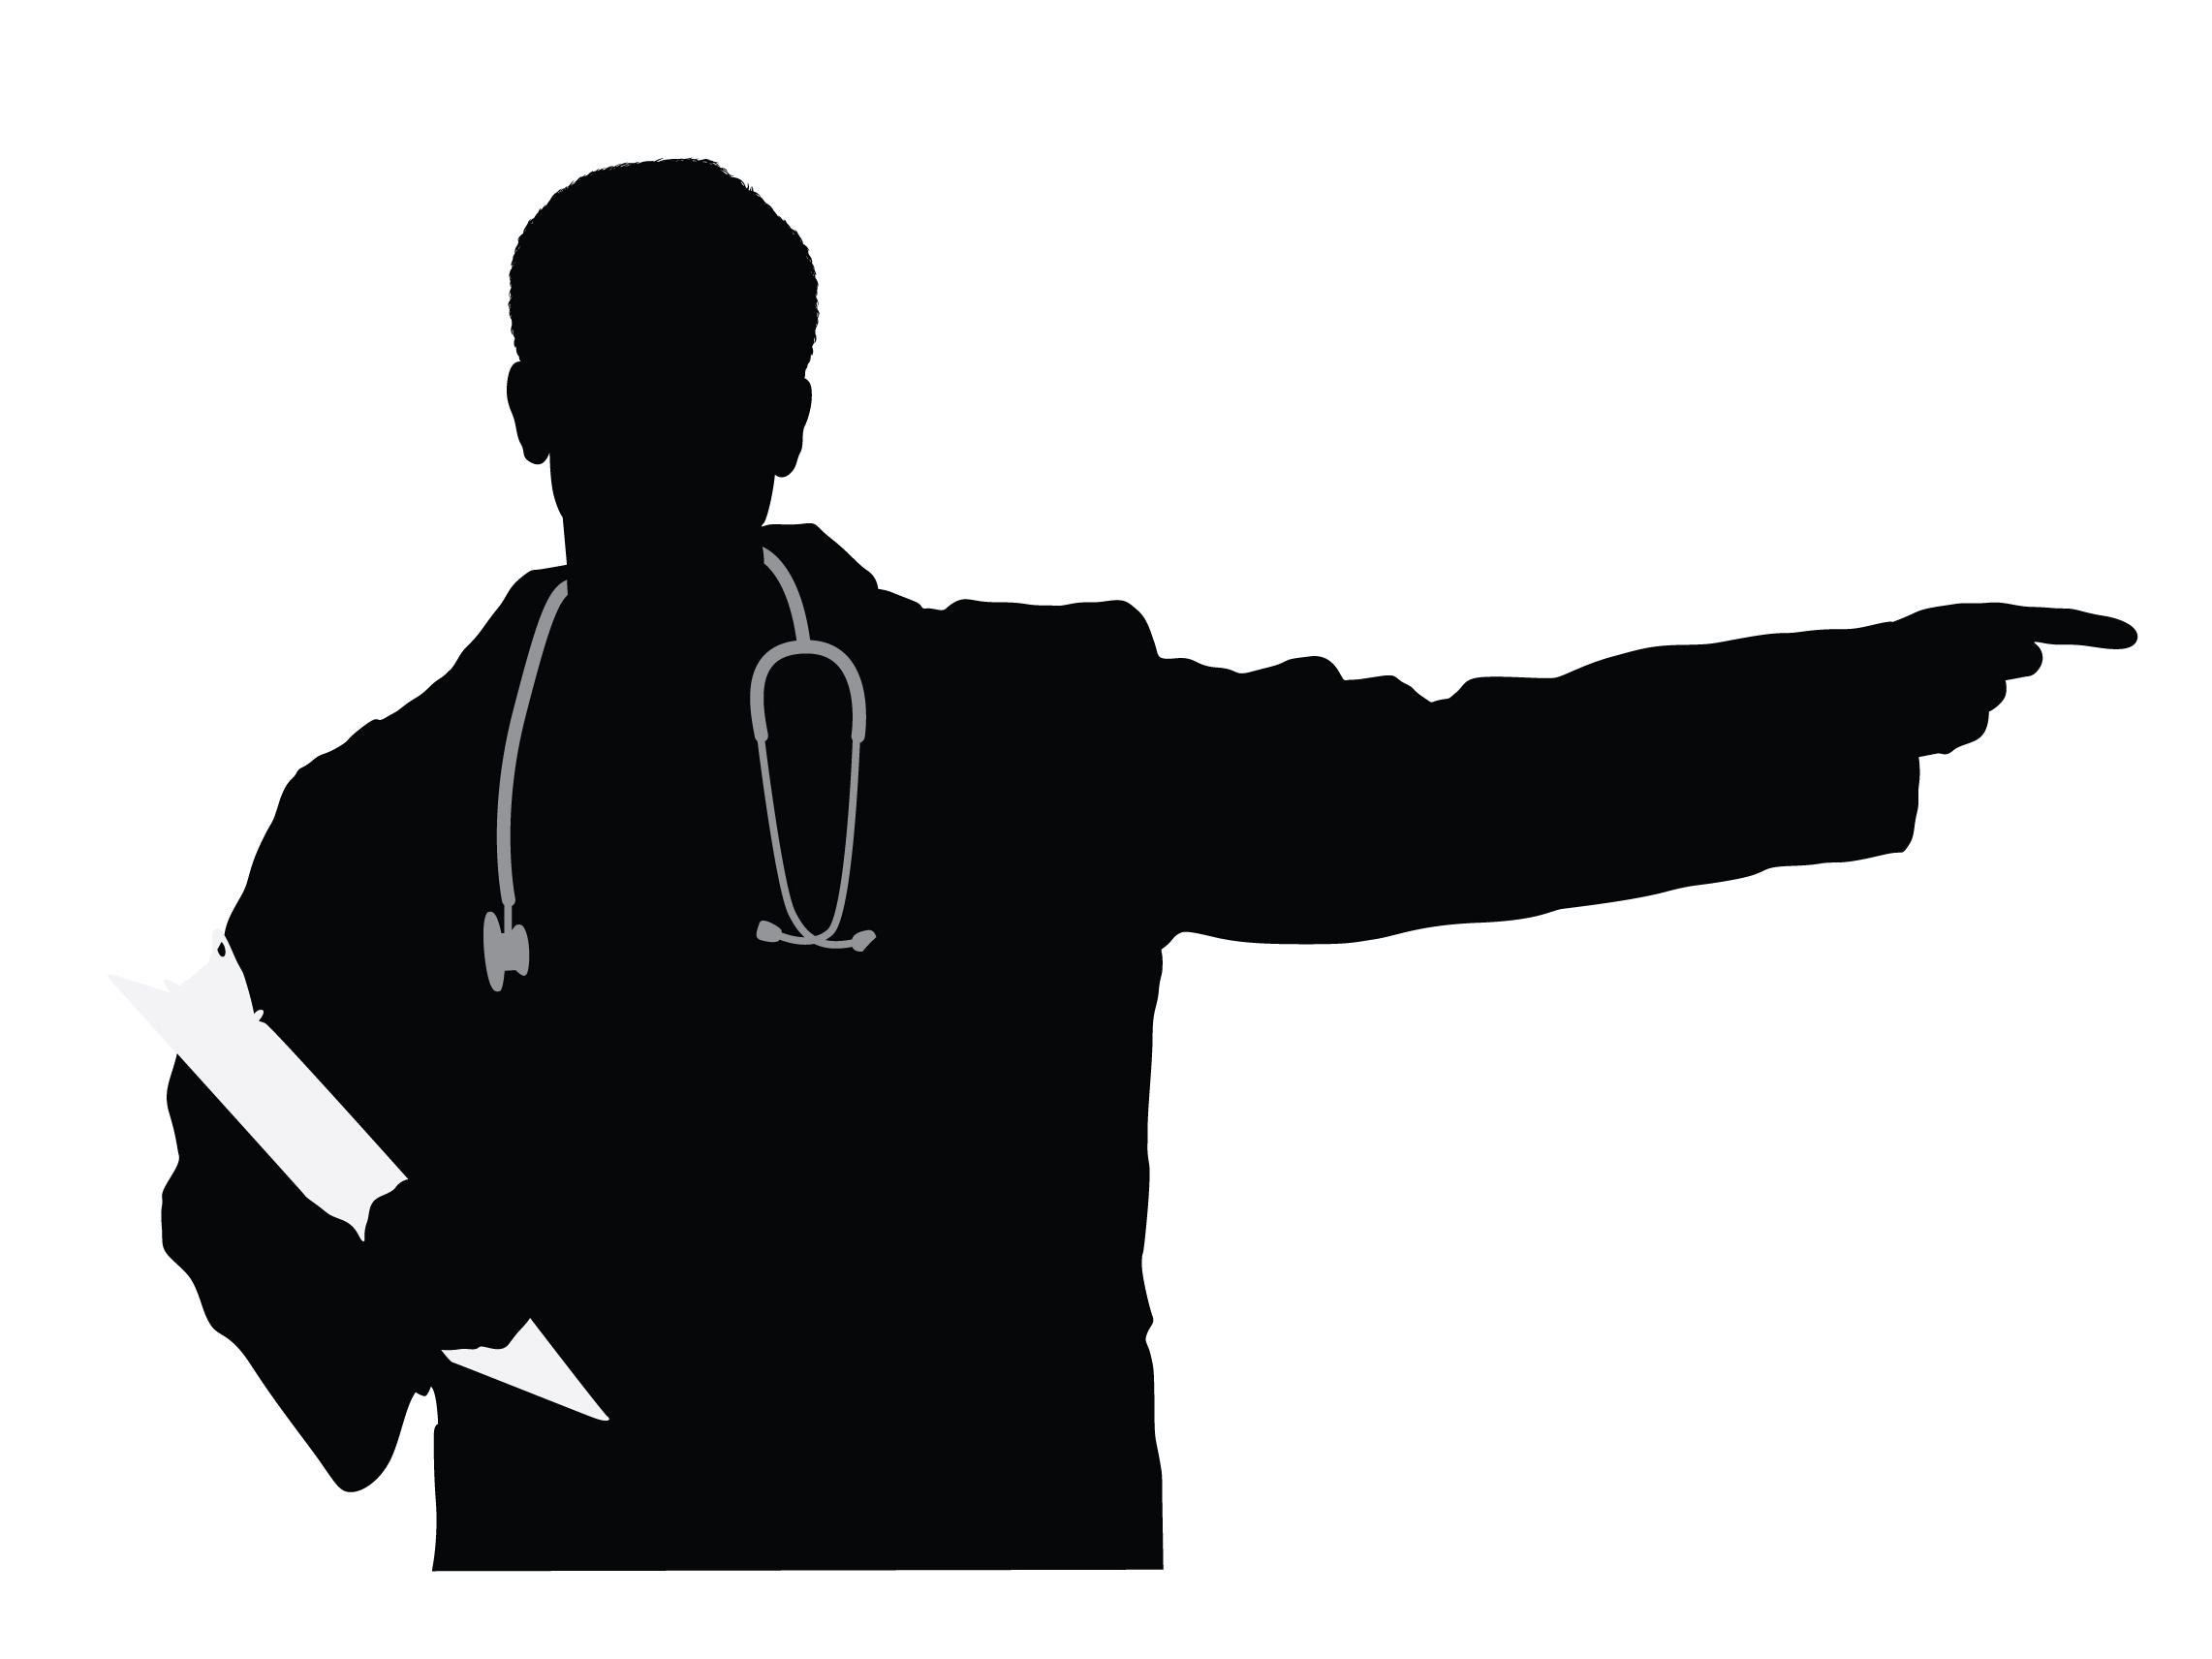 Doctors Think The Other Guy Often Prescribes Unnecessary Care